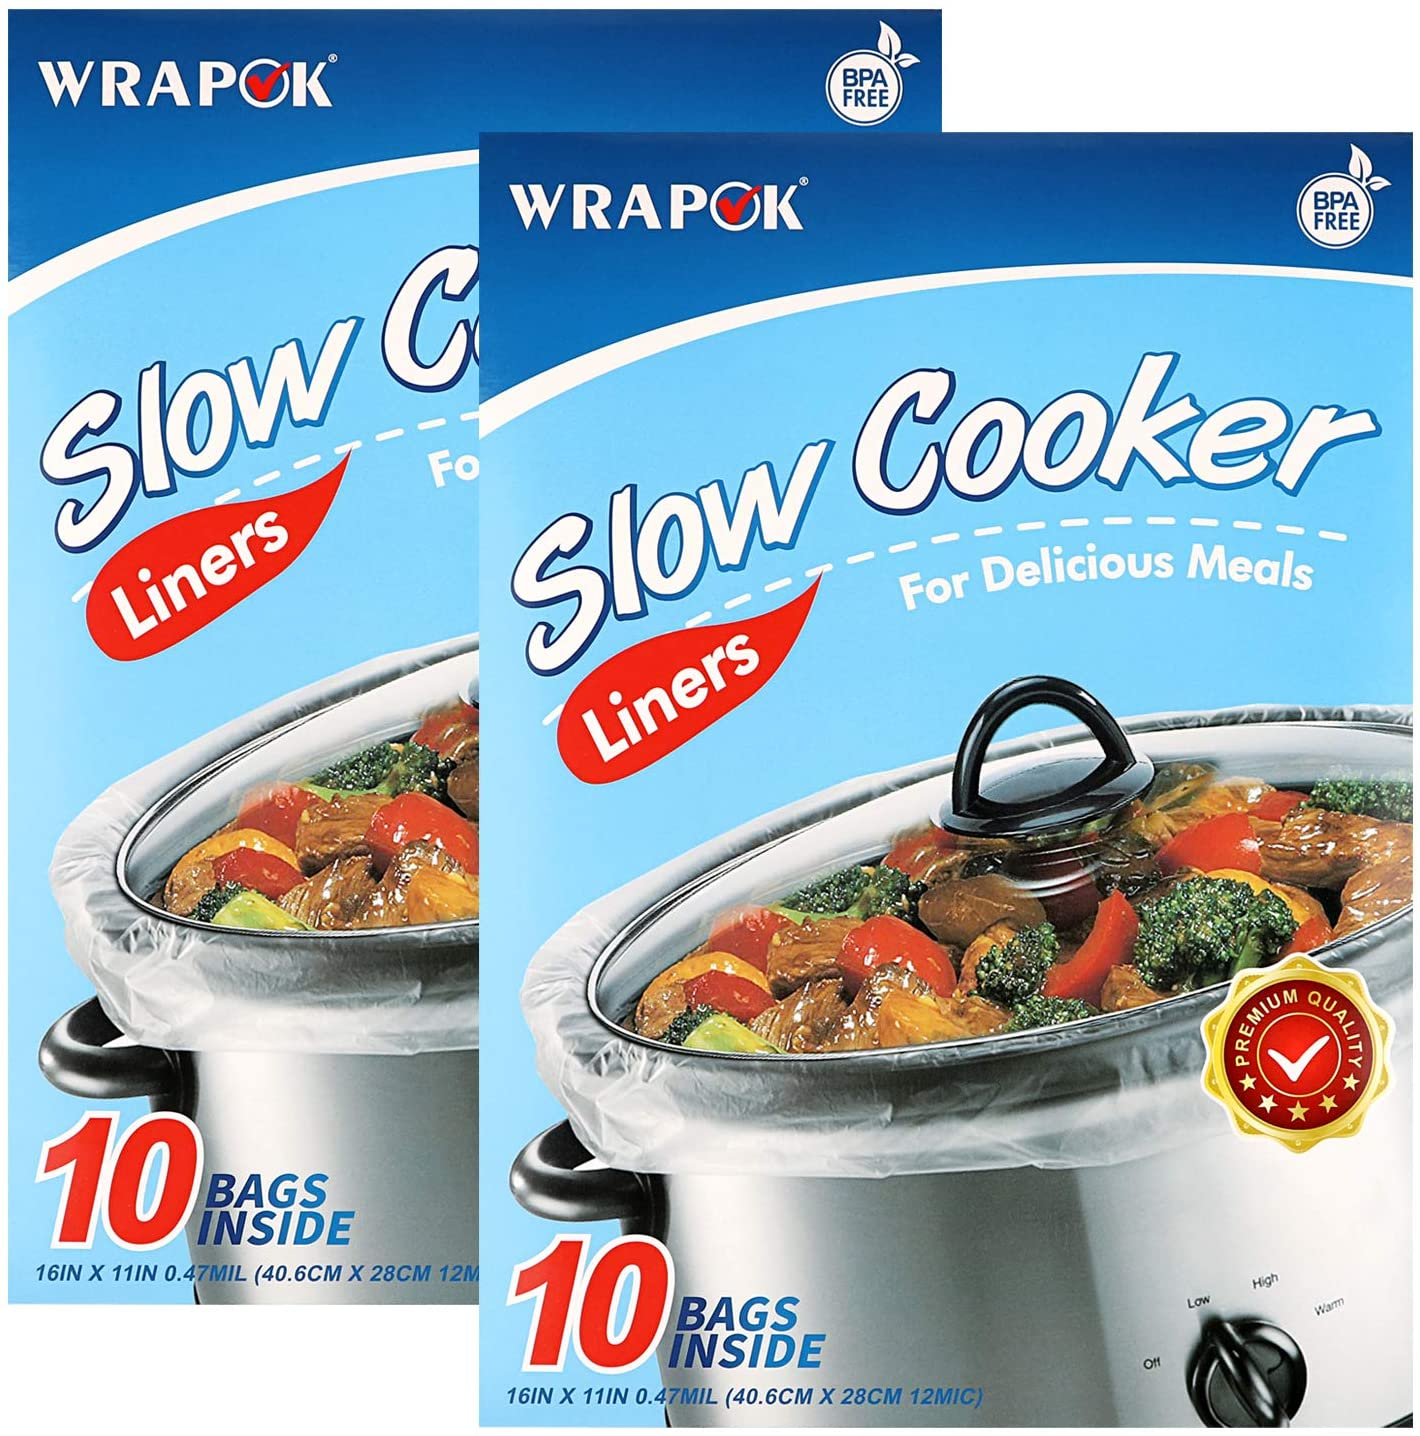 WRAPOK Small Slow Cooker Liners Kitchen Disposable Cooking Bags BPA Free for Oval or Round Pot, Size 11 x 16 Inch, Fits 1 to 3 Quarts - 2 Pack (20 Bags Total)